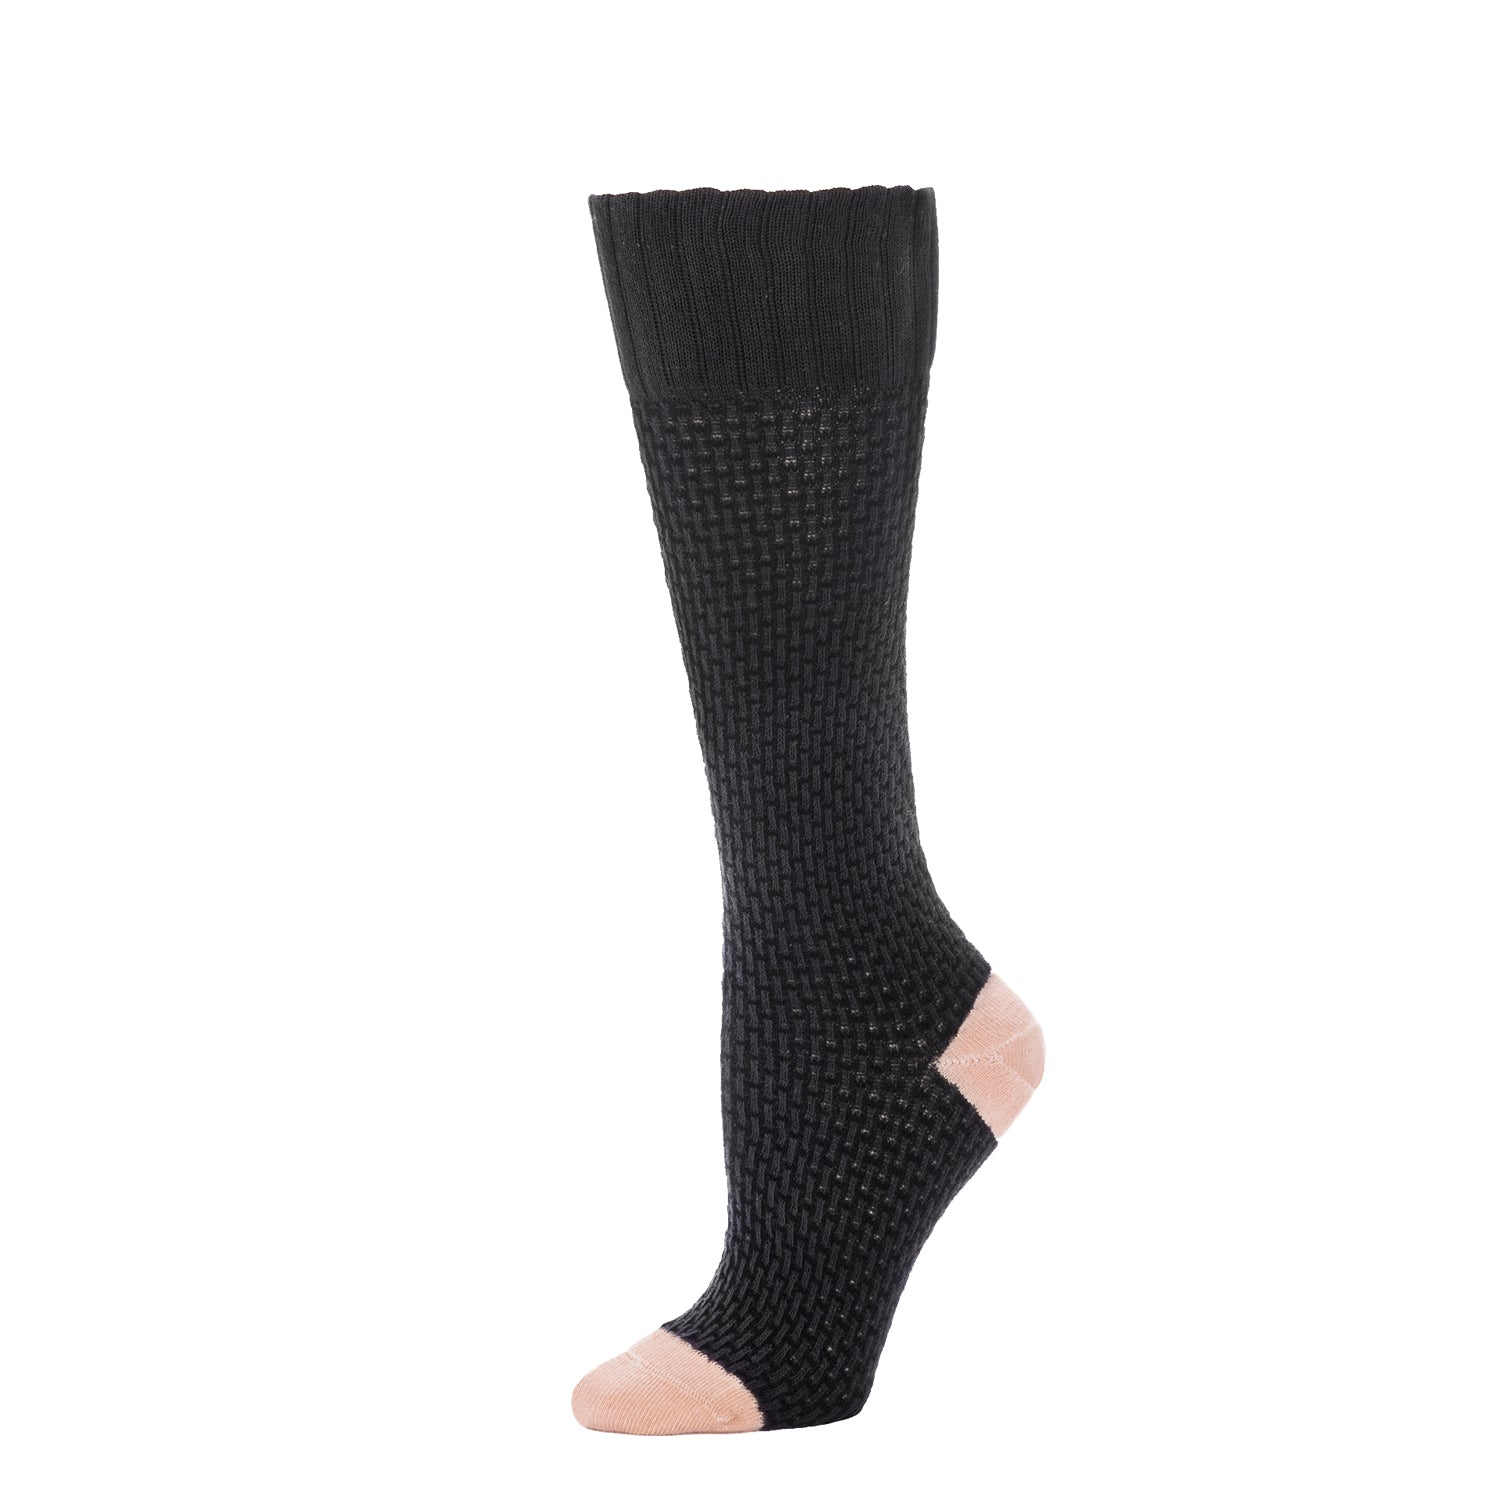 Basket Weave Textured Knee High- Black